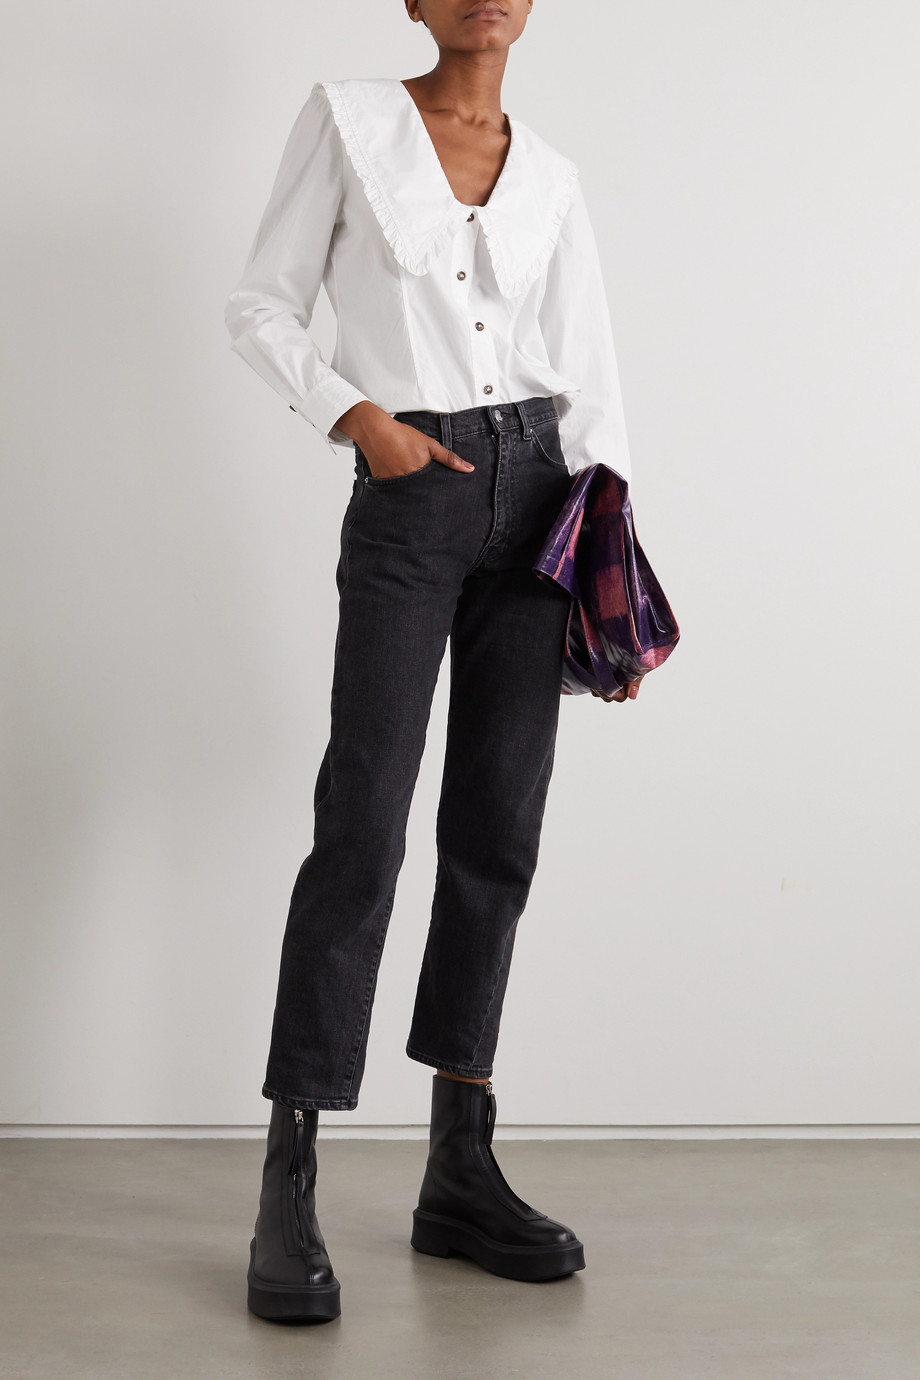 GANNI + NET SUSTAIN ruffled organic cotton-poplin shirt